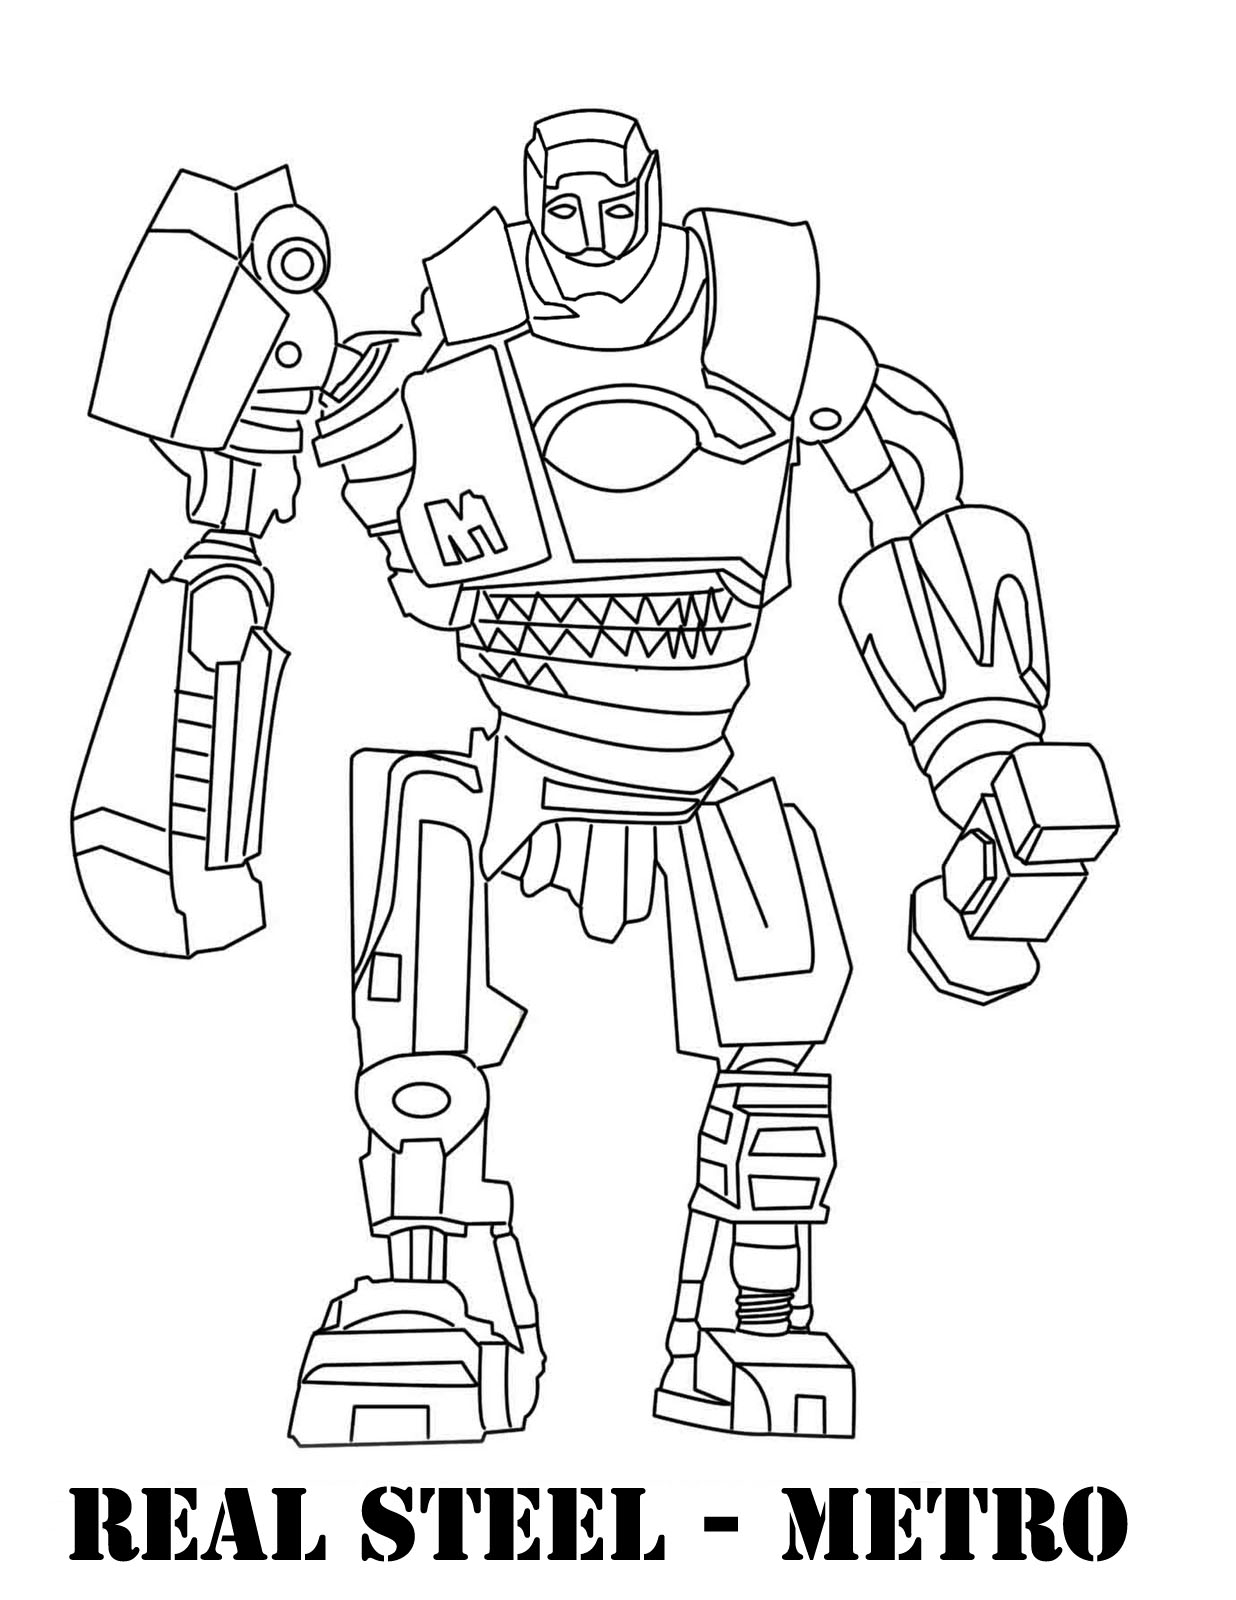 Real Steel Robots Free Coloring Pages